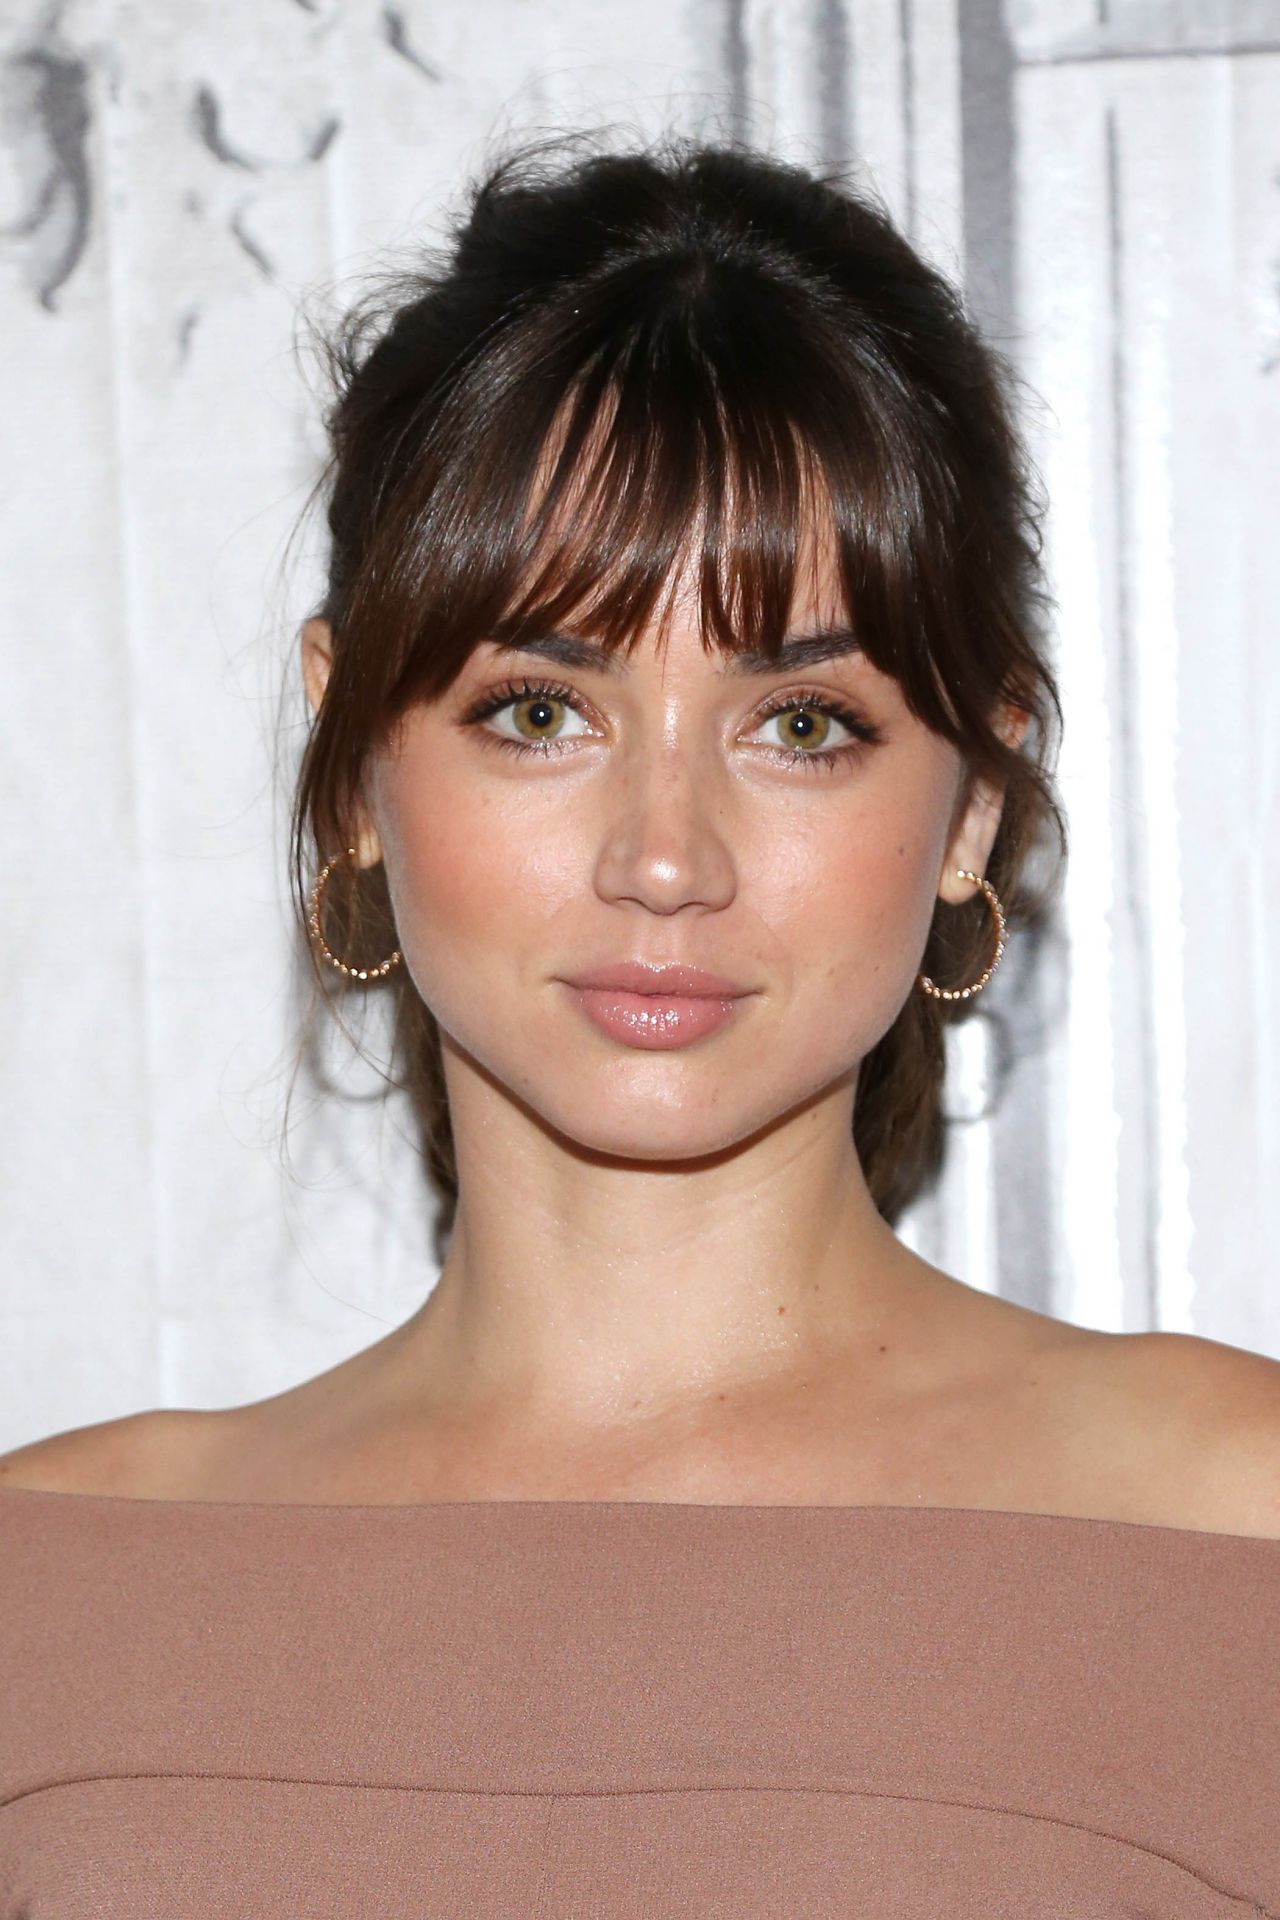 Ana De Armas Visited Aol Build In Ny 8 22 2016